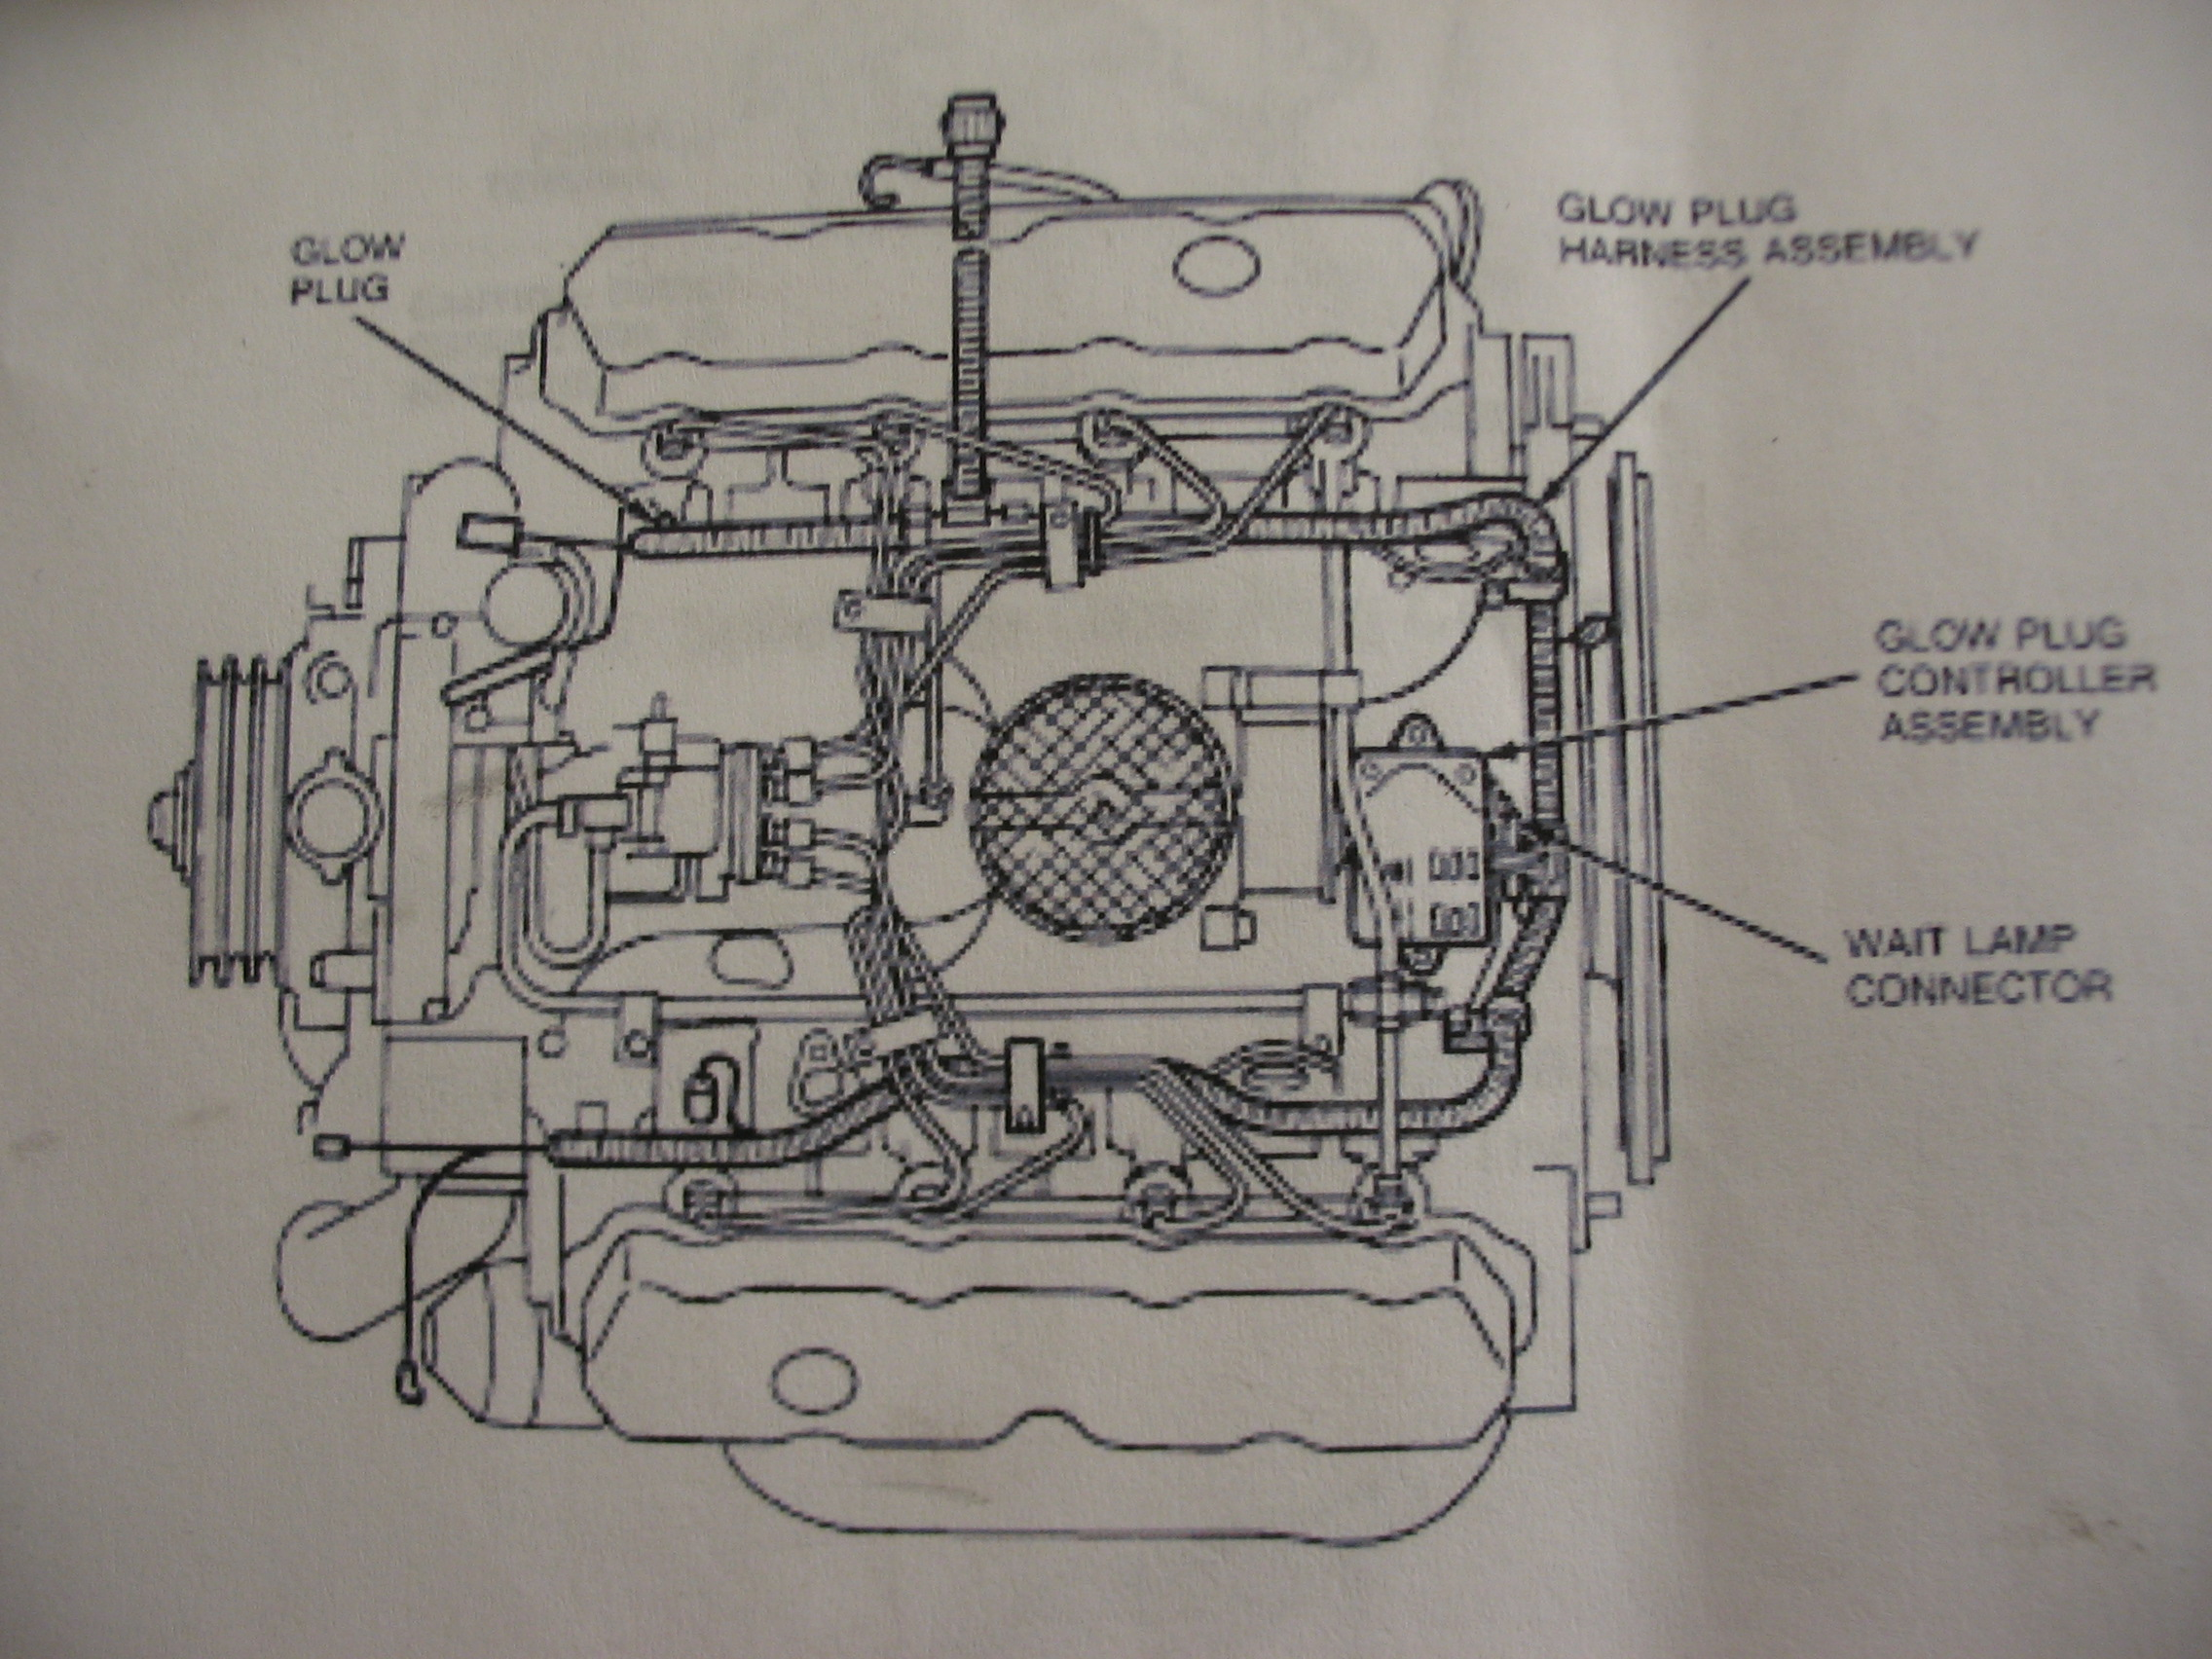 1990 F800 Diesel Wiring Diagram Library F350 91 Ford Glow Plug Location On Engine Drawing A